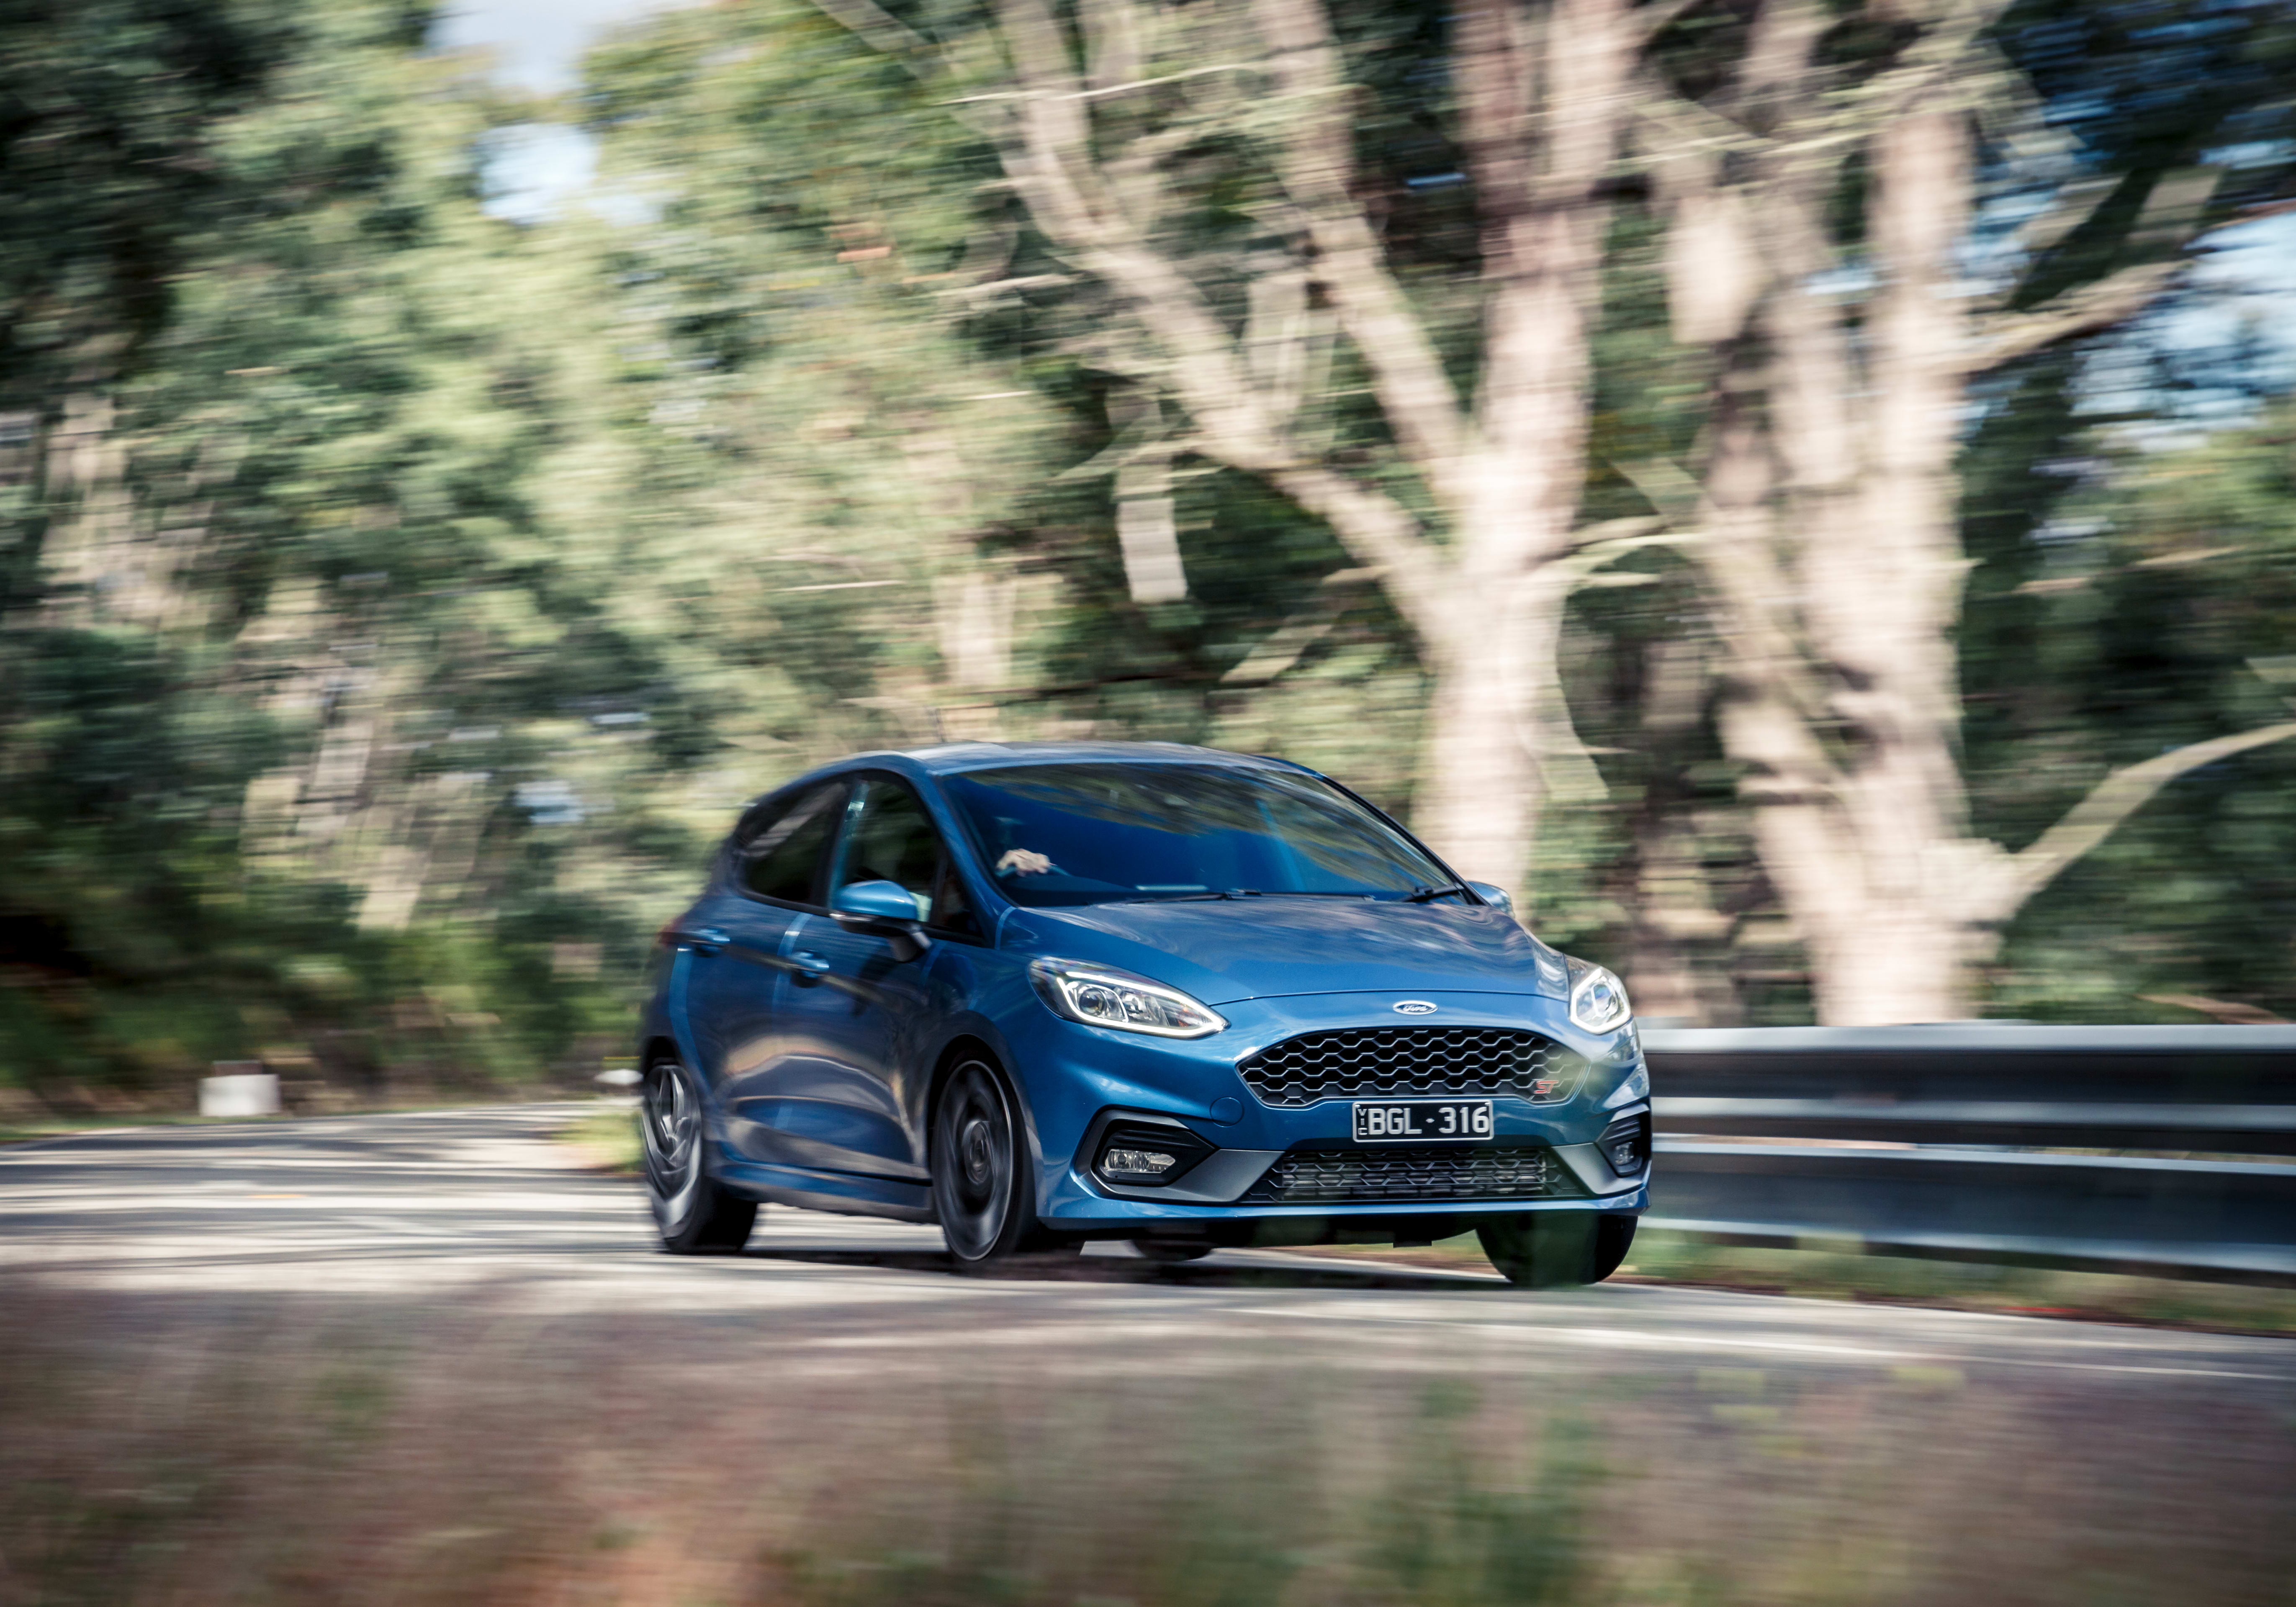 2021 Ford Fiesta ST review